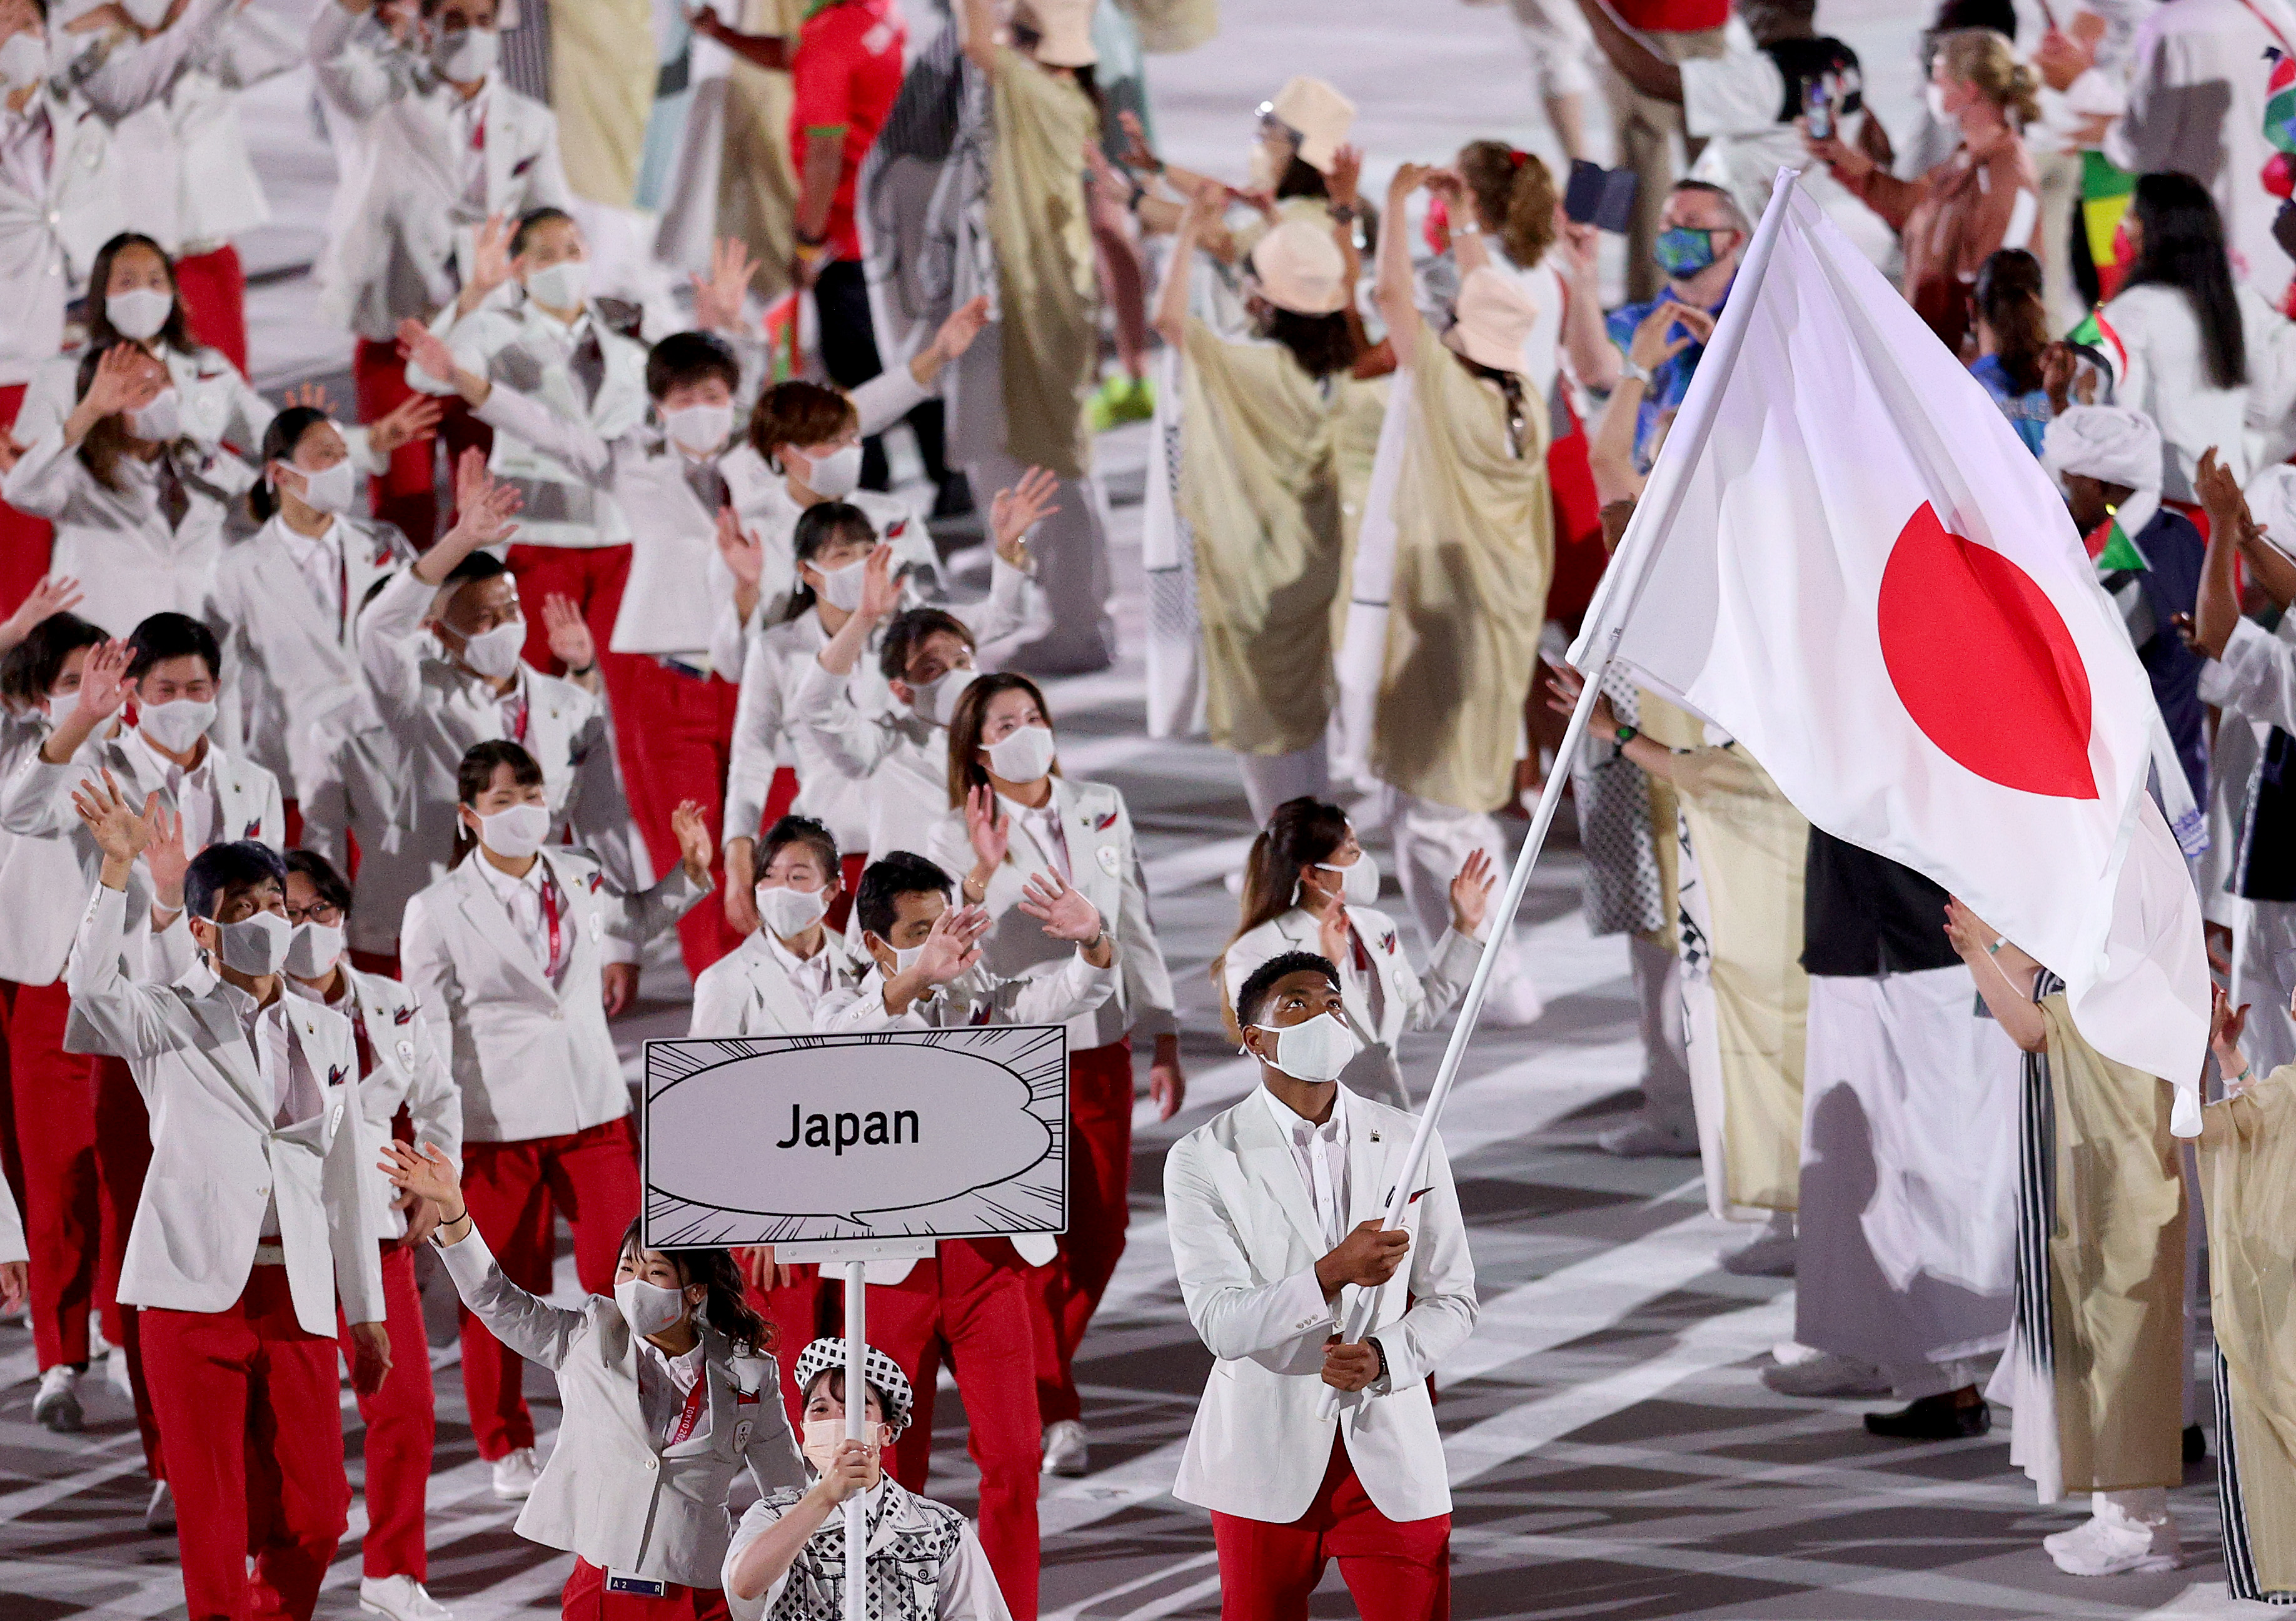 nbcnewyork.com - Walsh Giarrusso - Olympics Ceremony Uses Music from Japanese Video Games